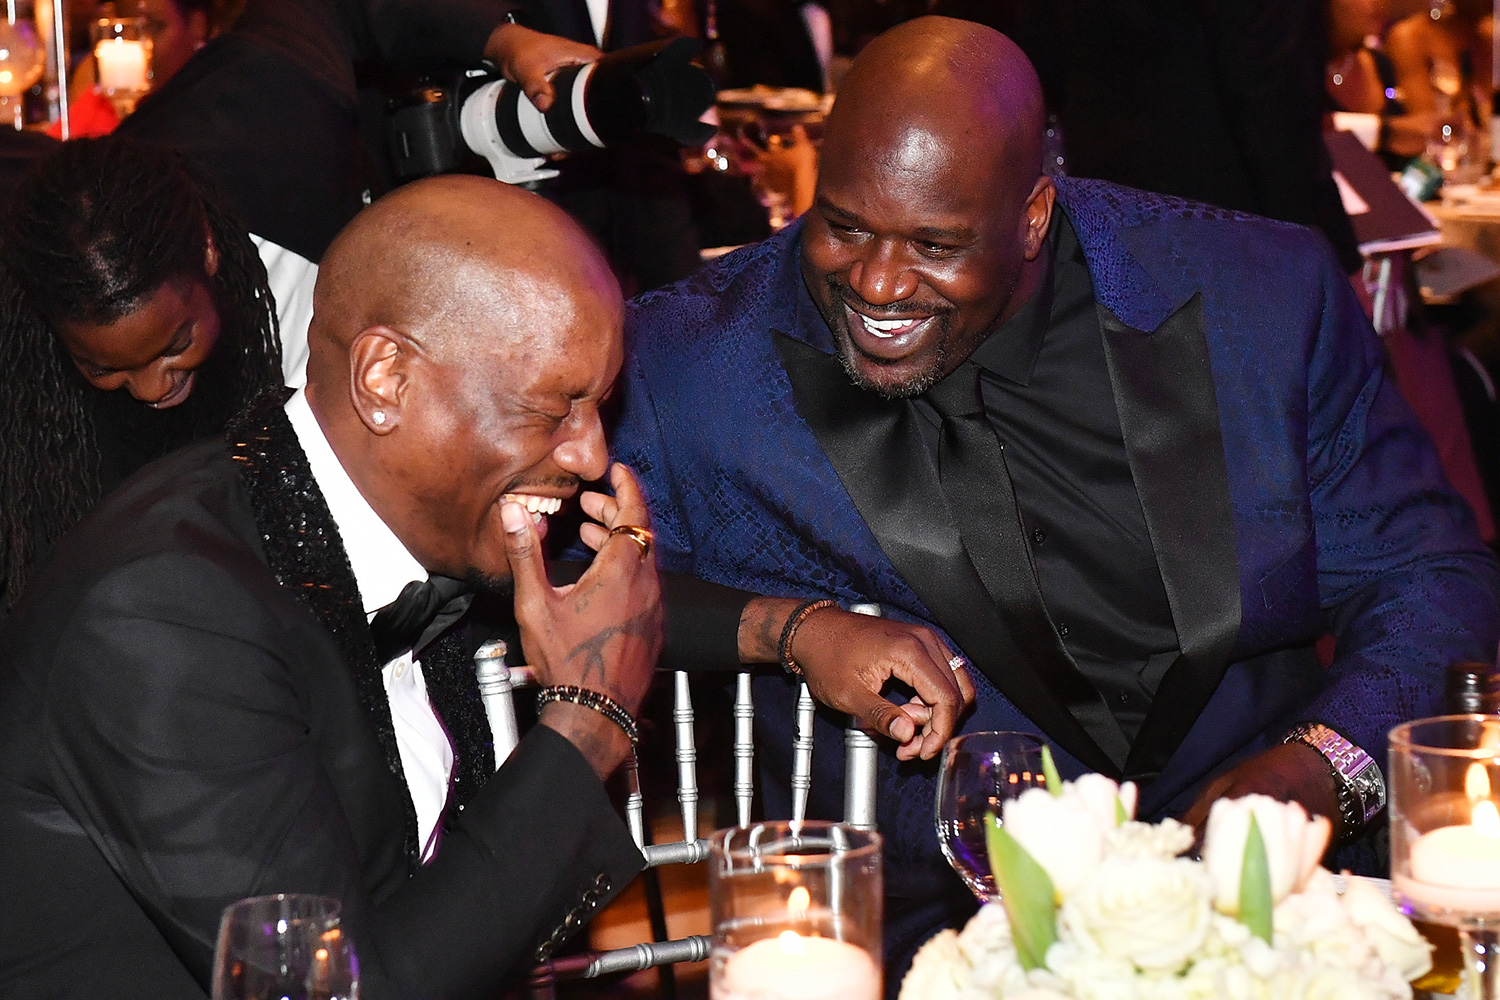 Tyrese Gibson and Shaquille O'Neal attend 36th Annual Atlanta UNCF Mayor's Masked Ball at Atlanta Marriott Marquis on December 21, 2019 in Atlanta, Georgia